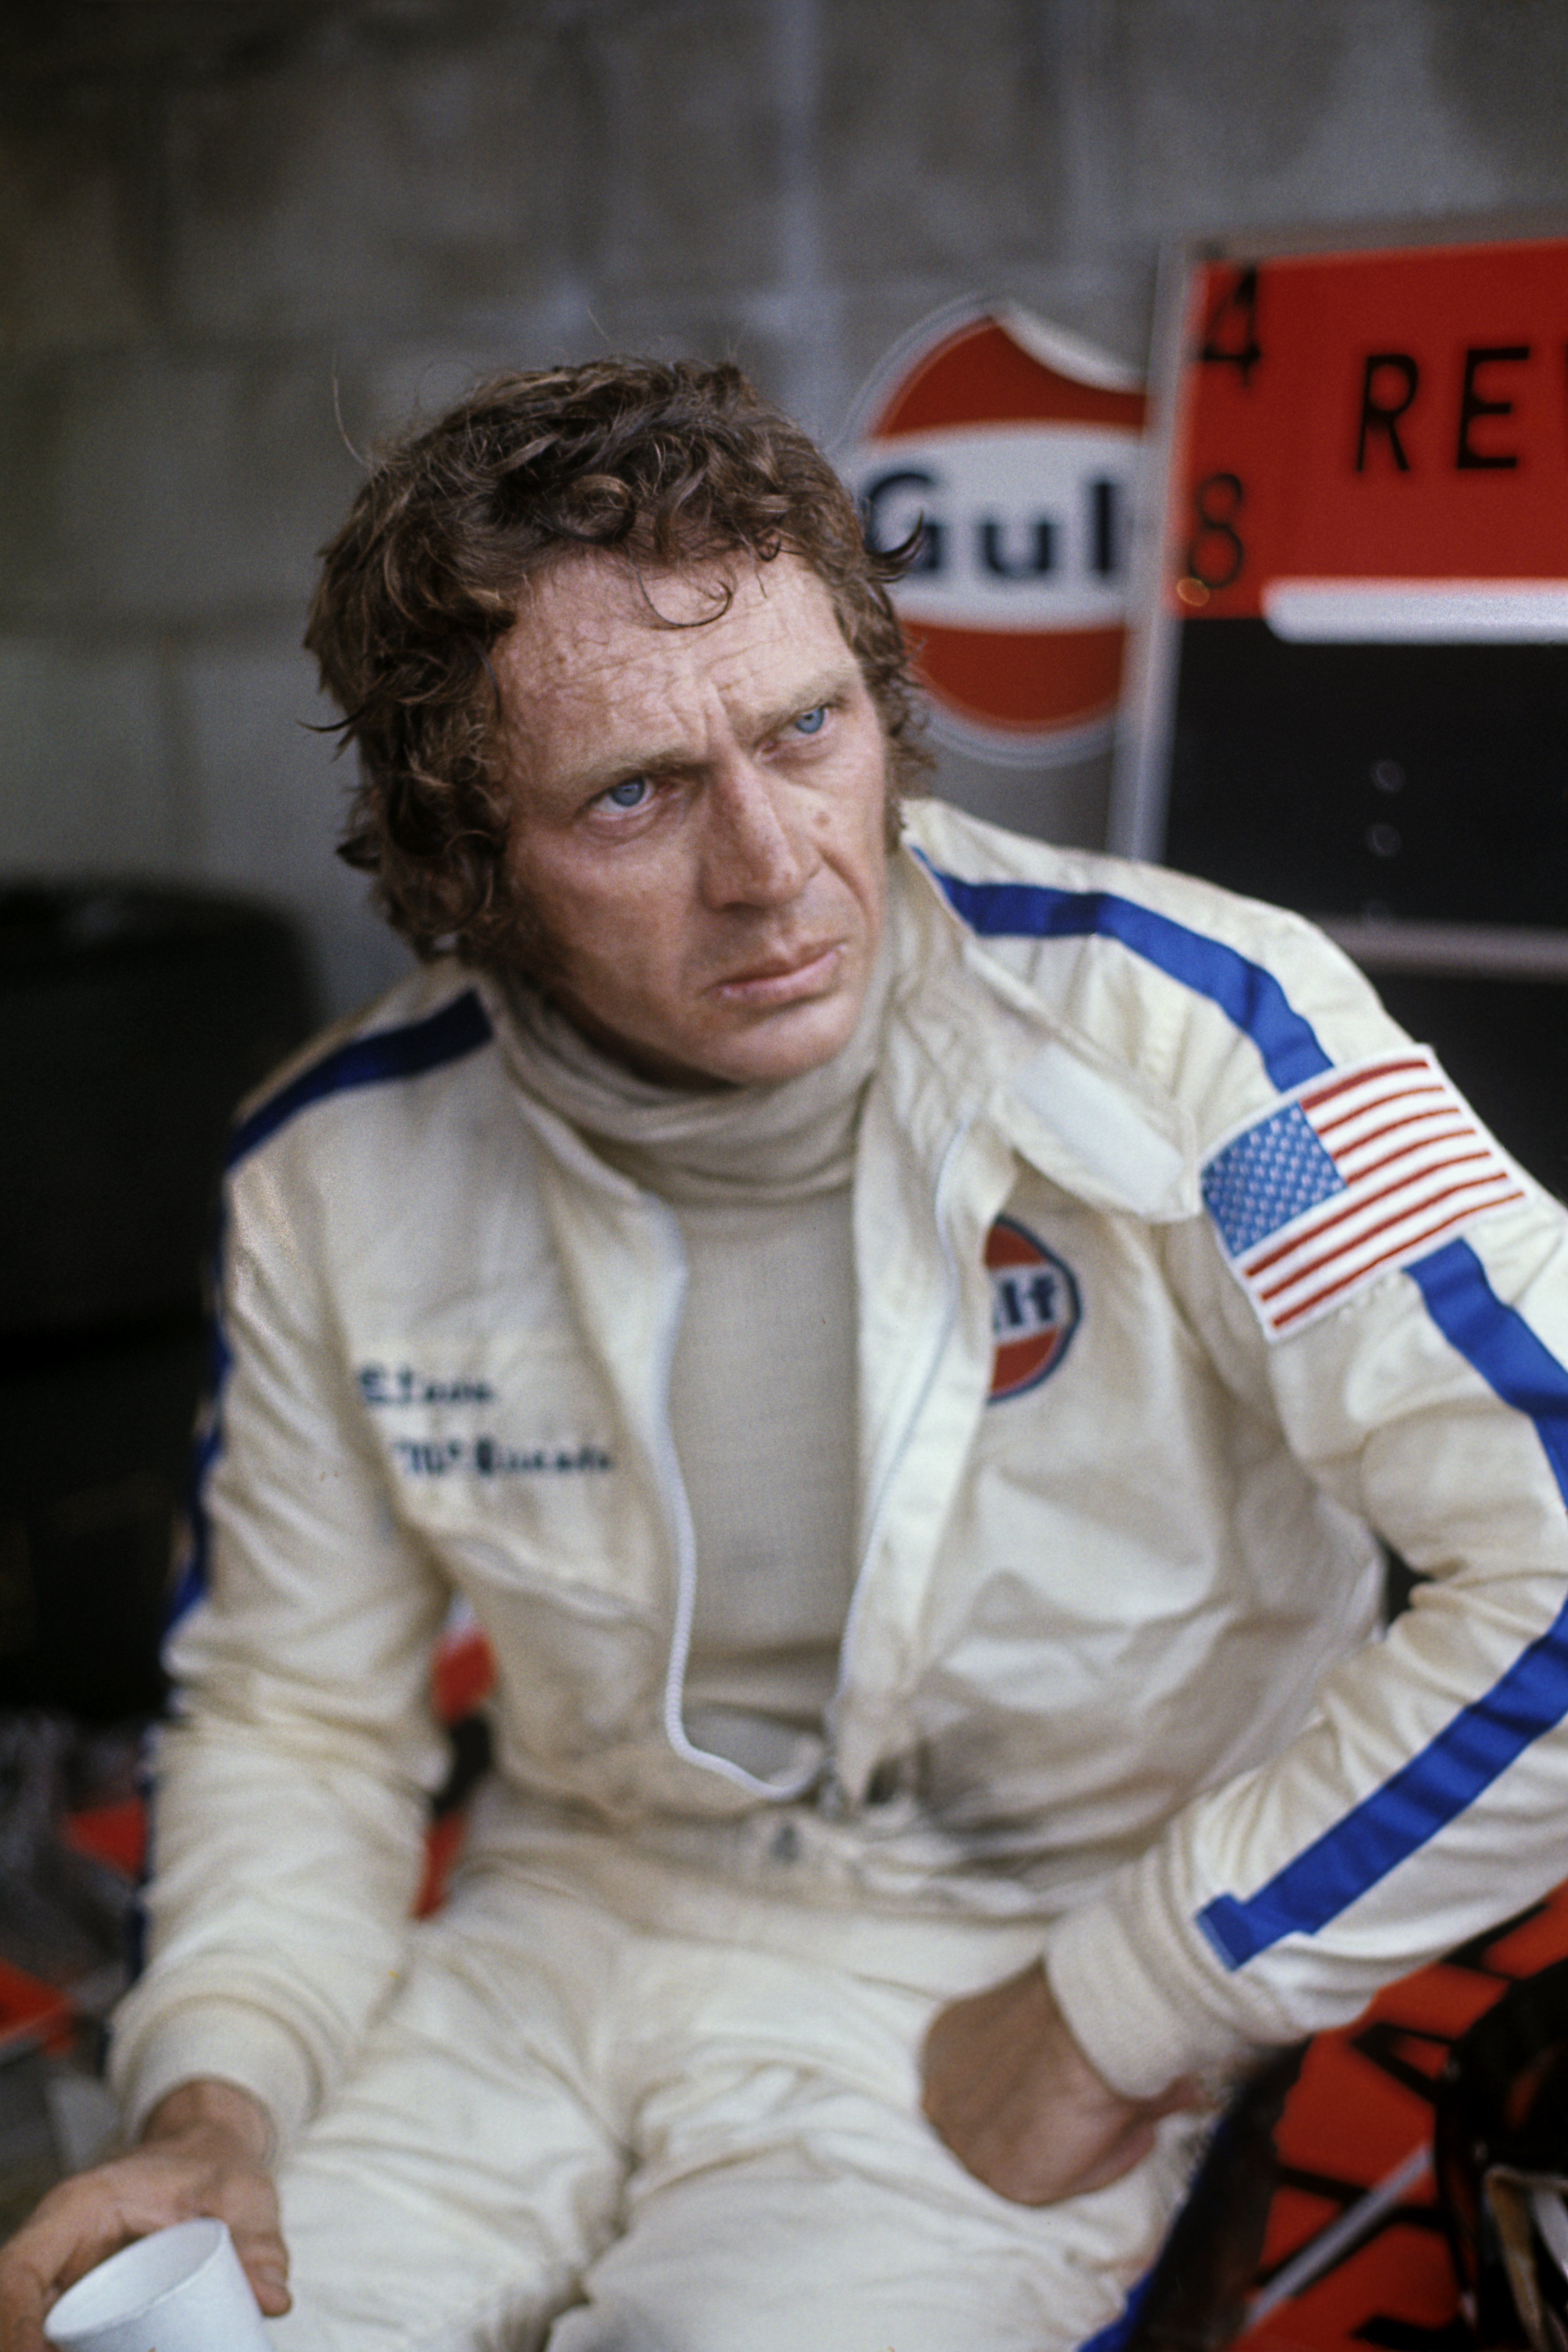 Steve McQueen during the 1970 12 Hours of Sebring endurance race on March 21, 1970 | Photo: Getty Images